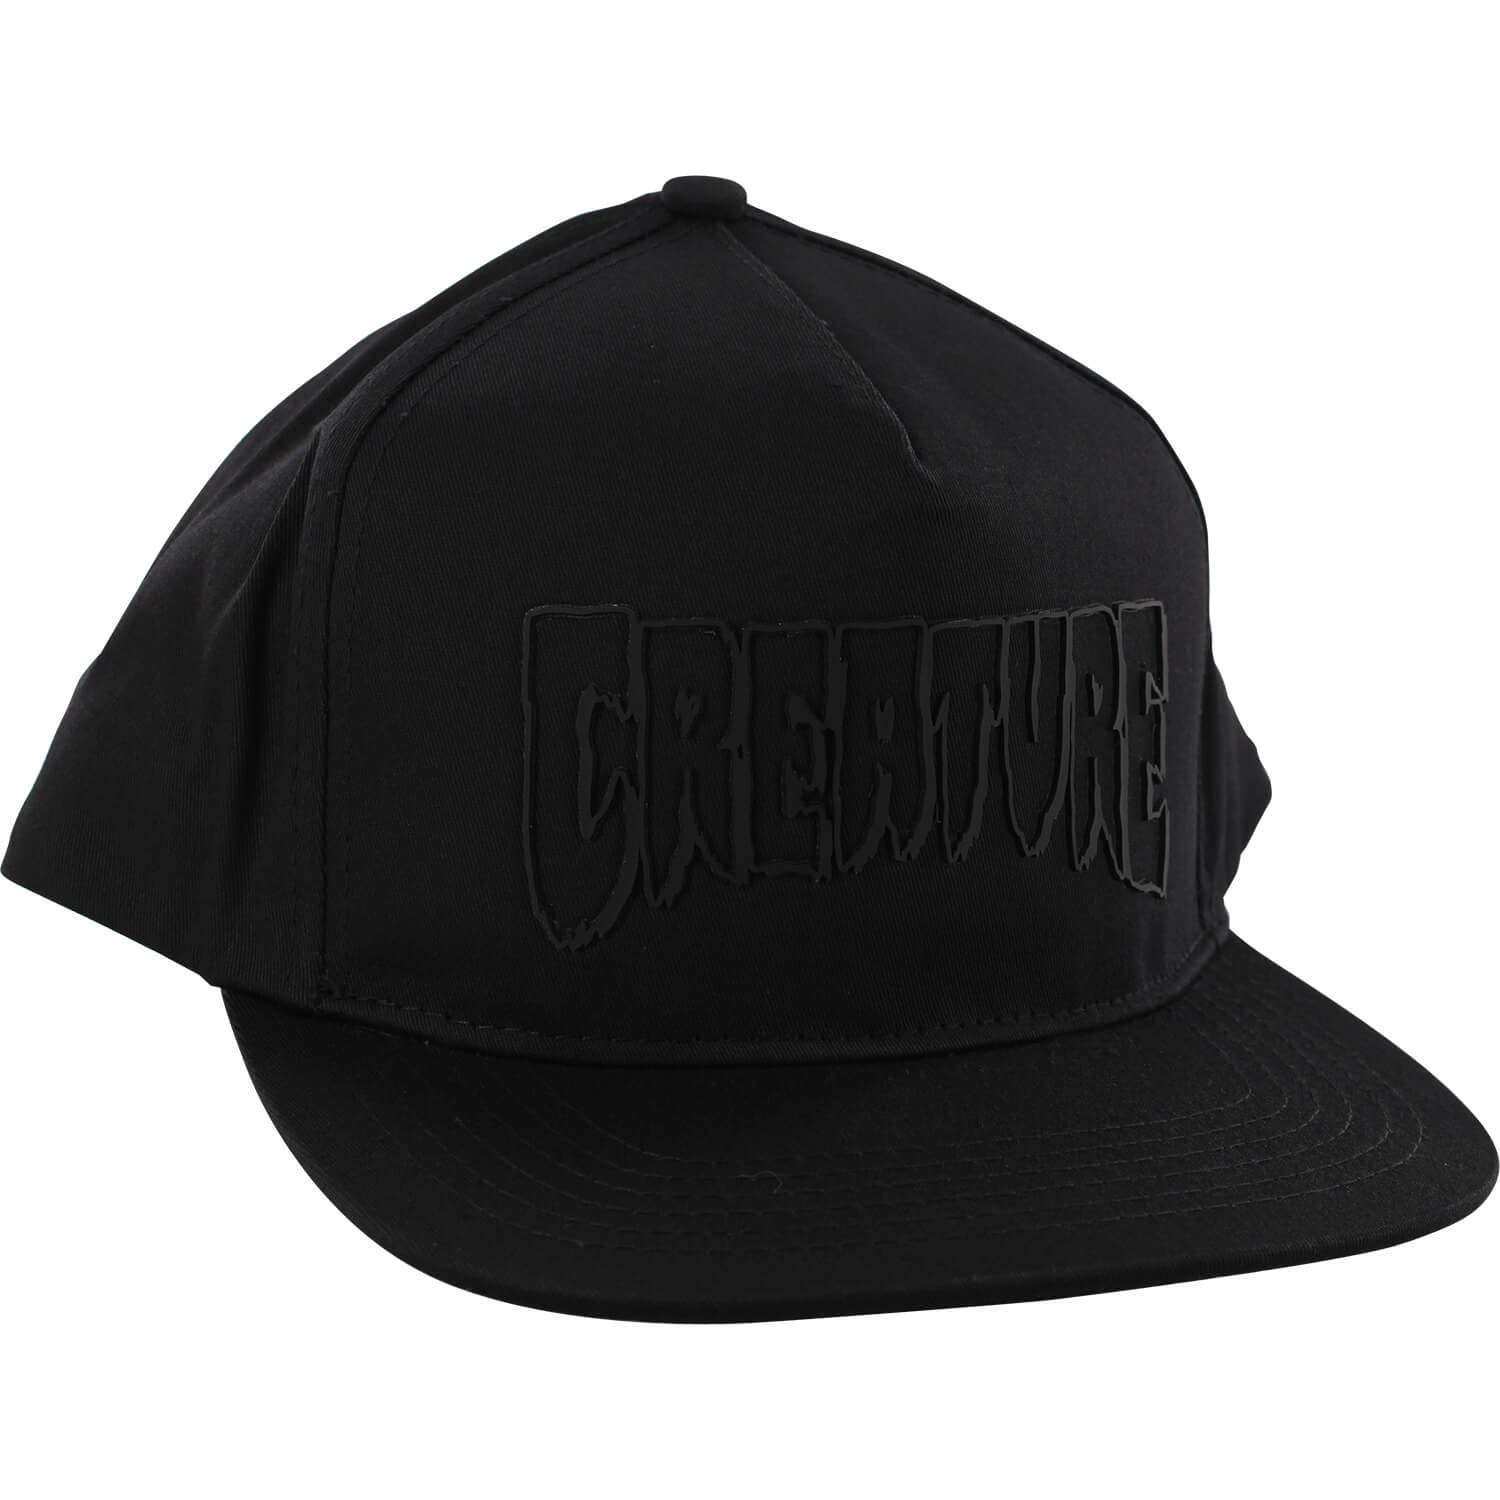 Amazon.com  Creature Skateboards Logo Weld Black Snapback Hat - Adjustable   Sports   Outdoors 2f29e44a94a